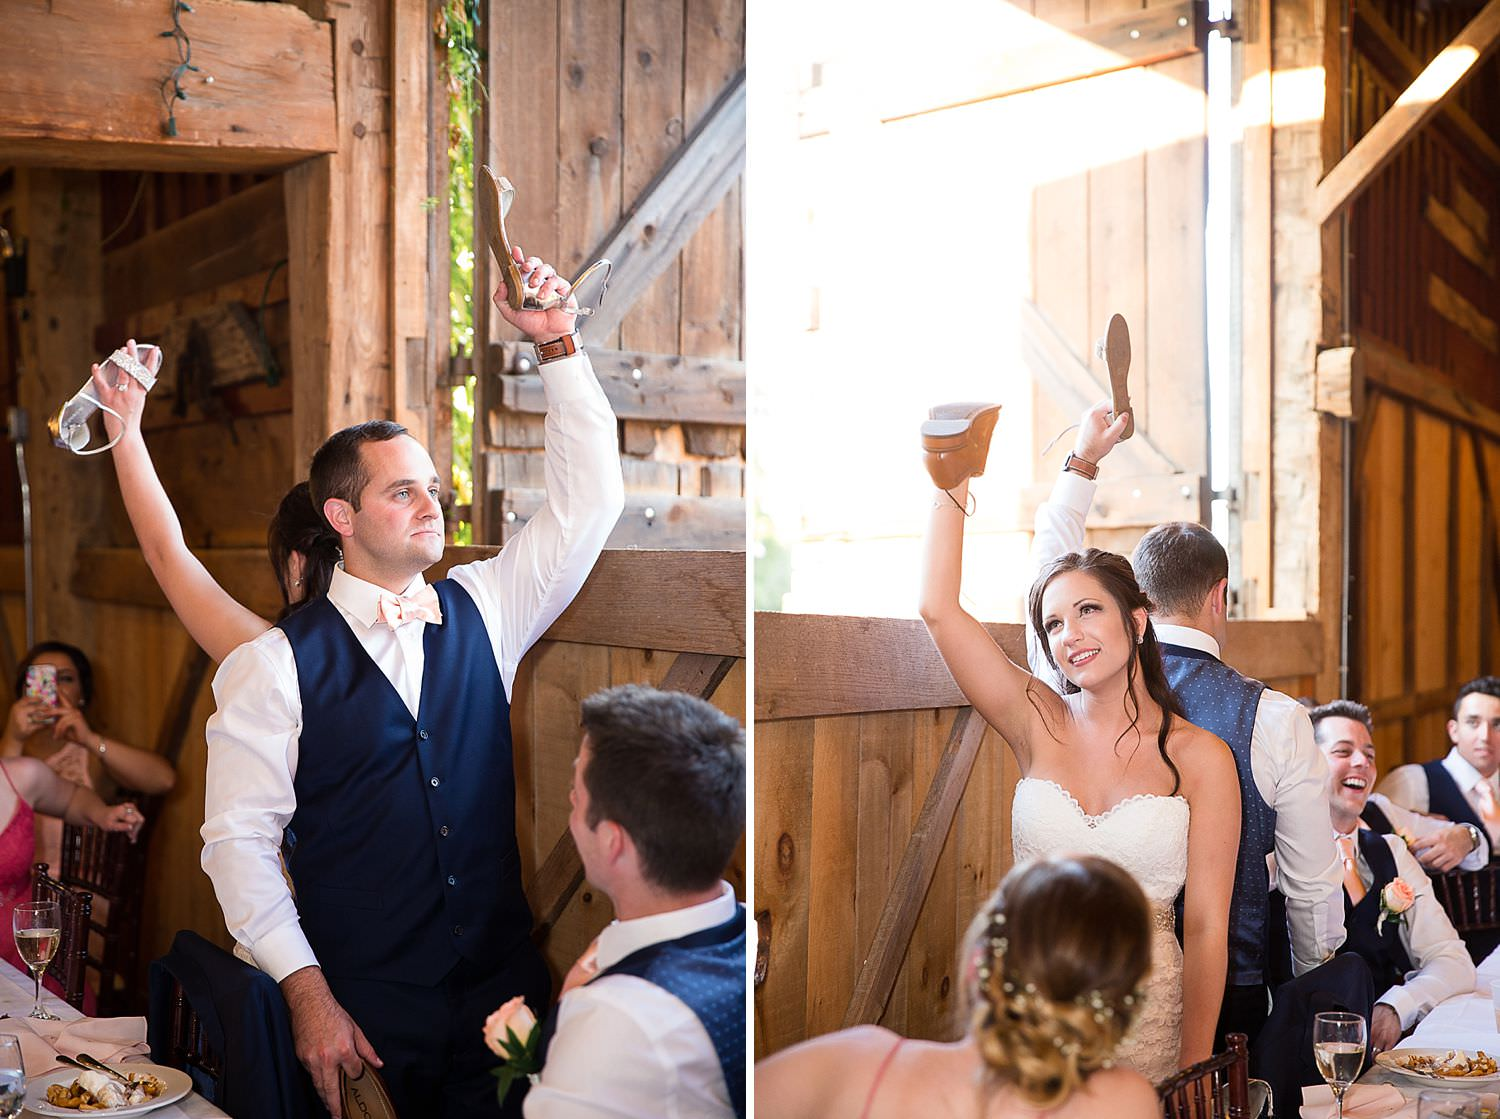 Belcroft Estates Wedding Photos, Barn Wedding Ontario, Belcroft Estate Wedding, Avenue Photo, Toronto Wedding Photographer, Muskoka Wedding Photographer